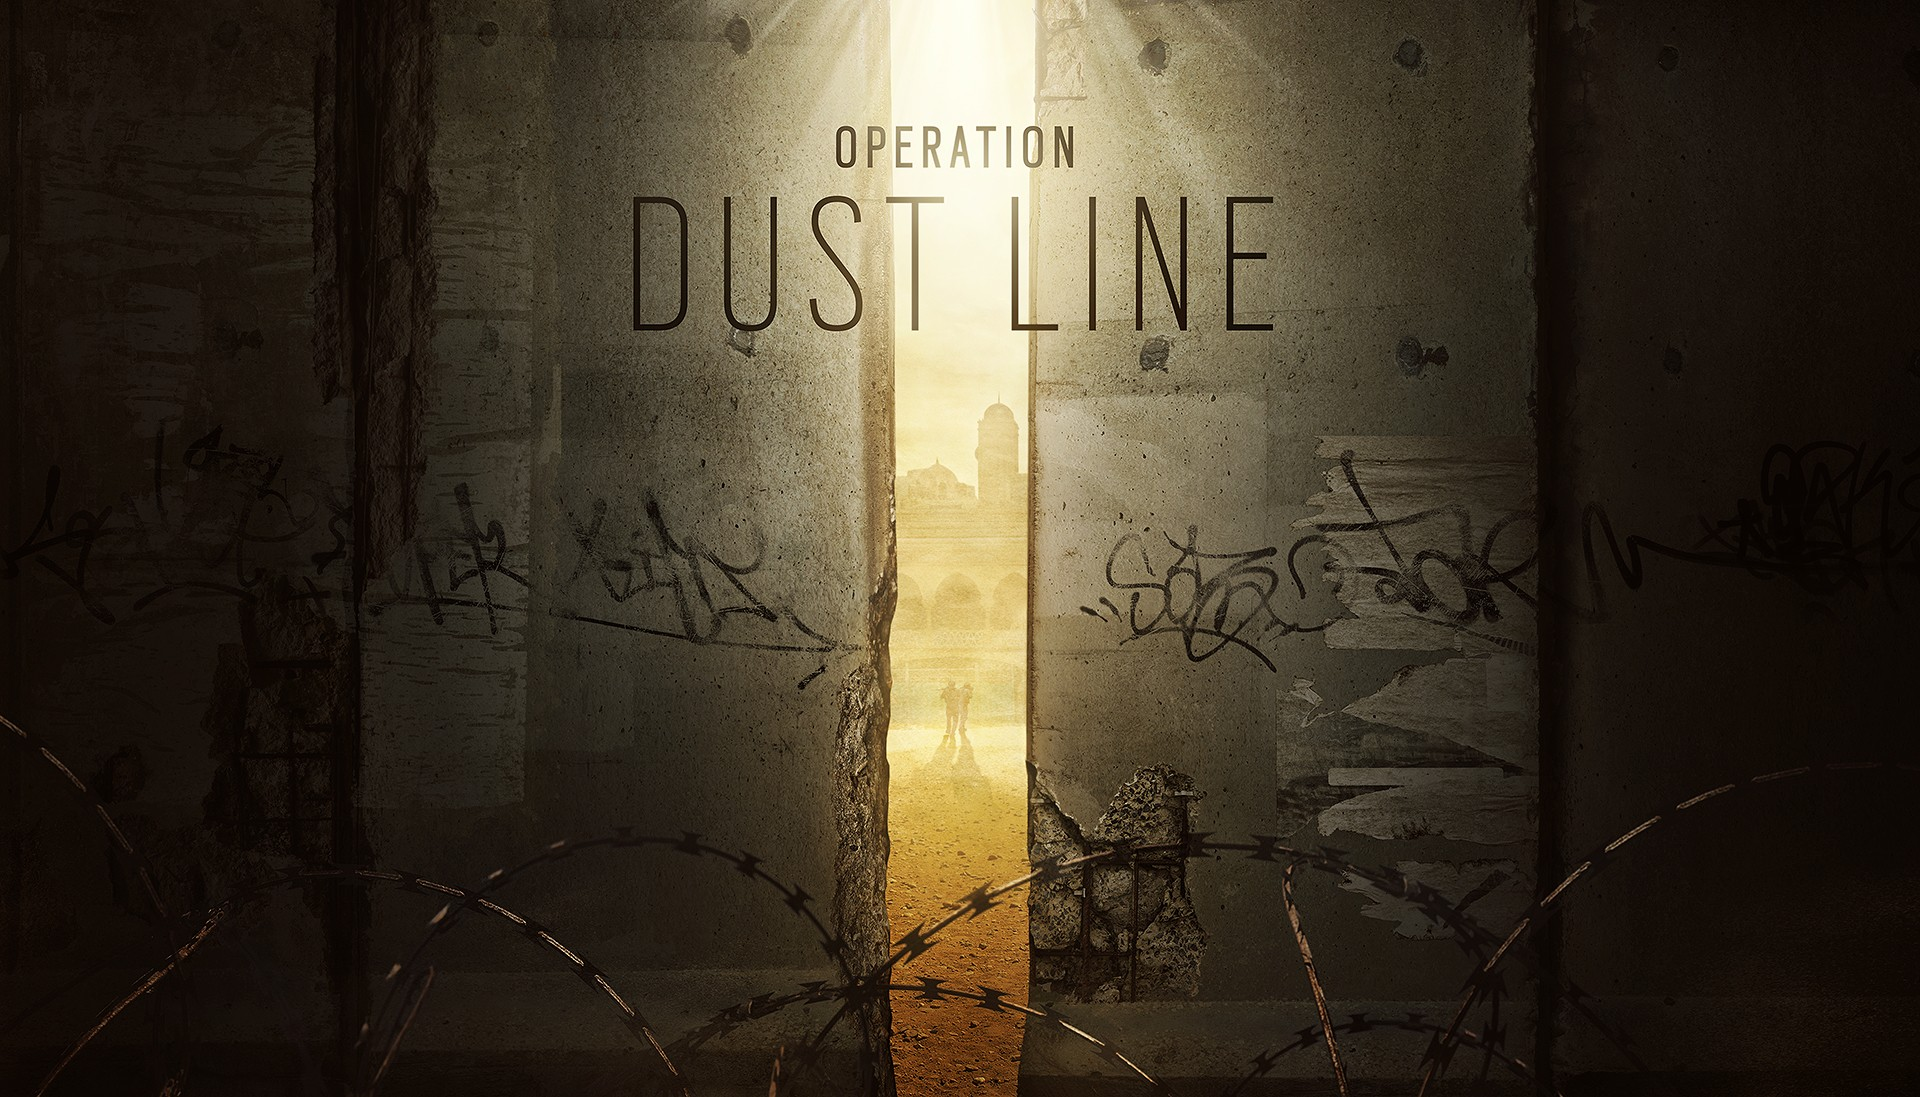 Opeartion Dust Line